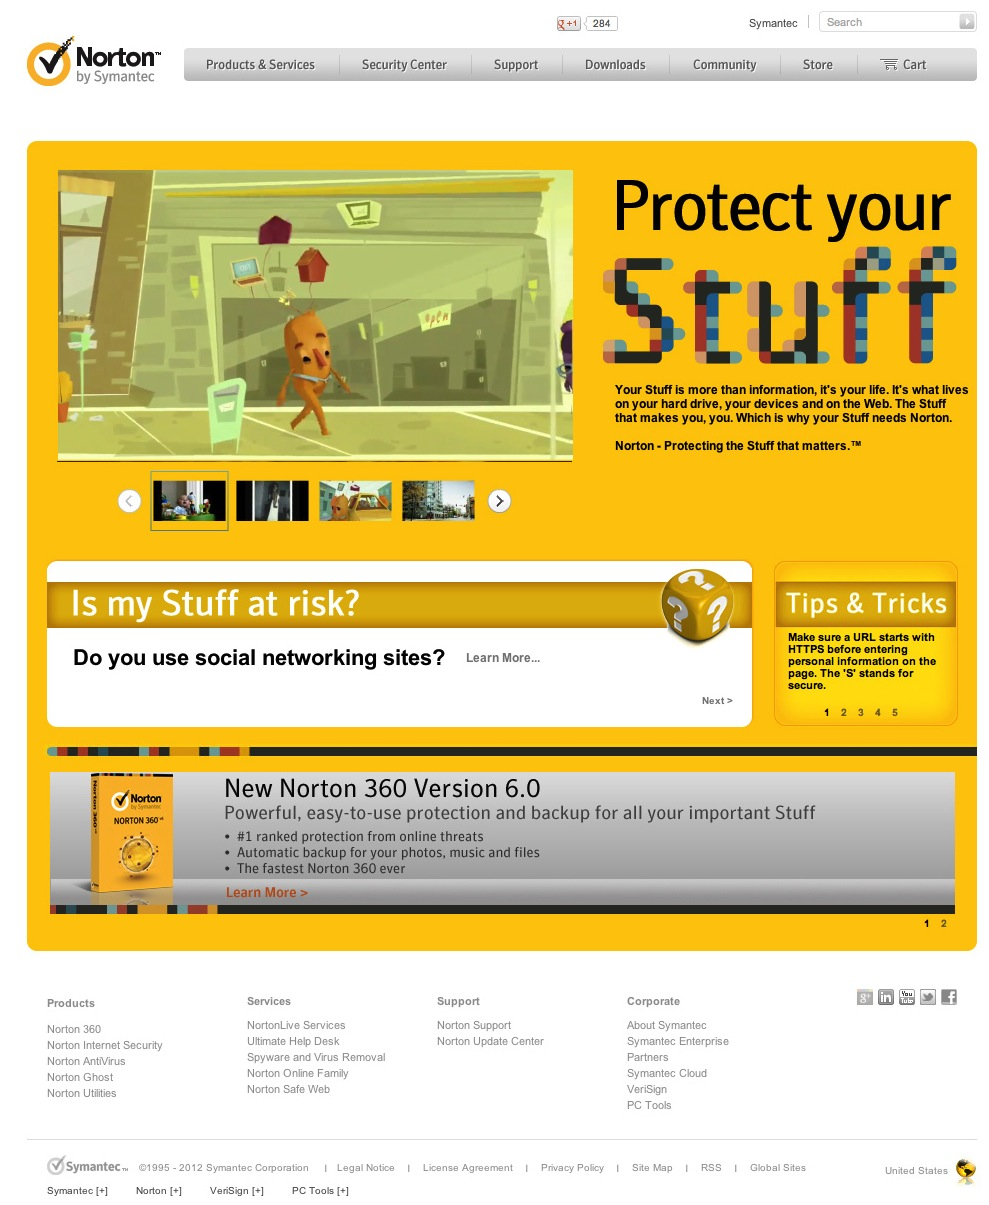 "Norton ""Protect Your Stuff"" Campaign Page"